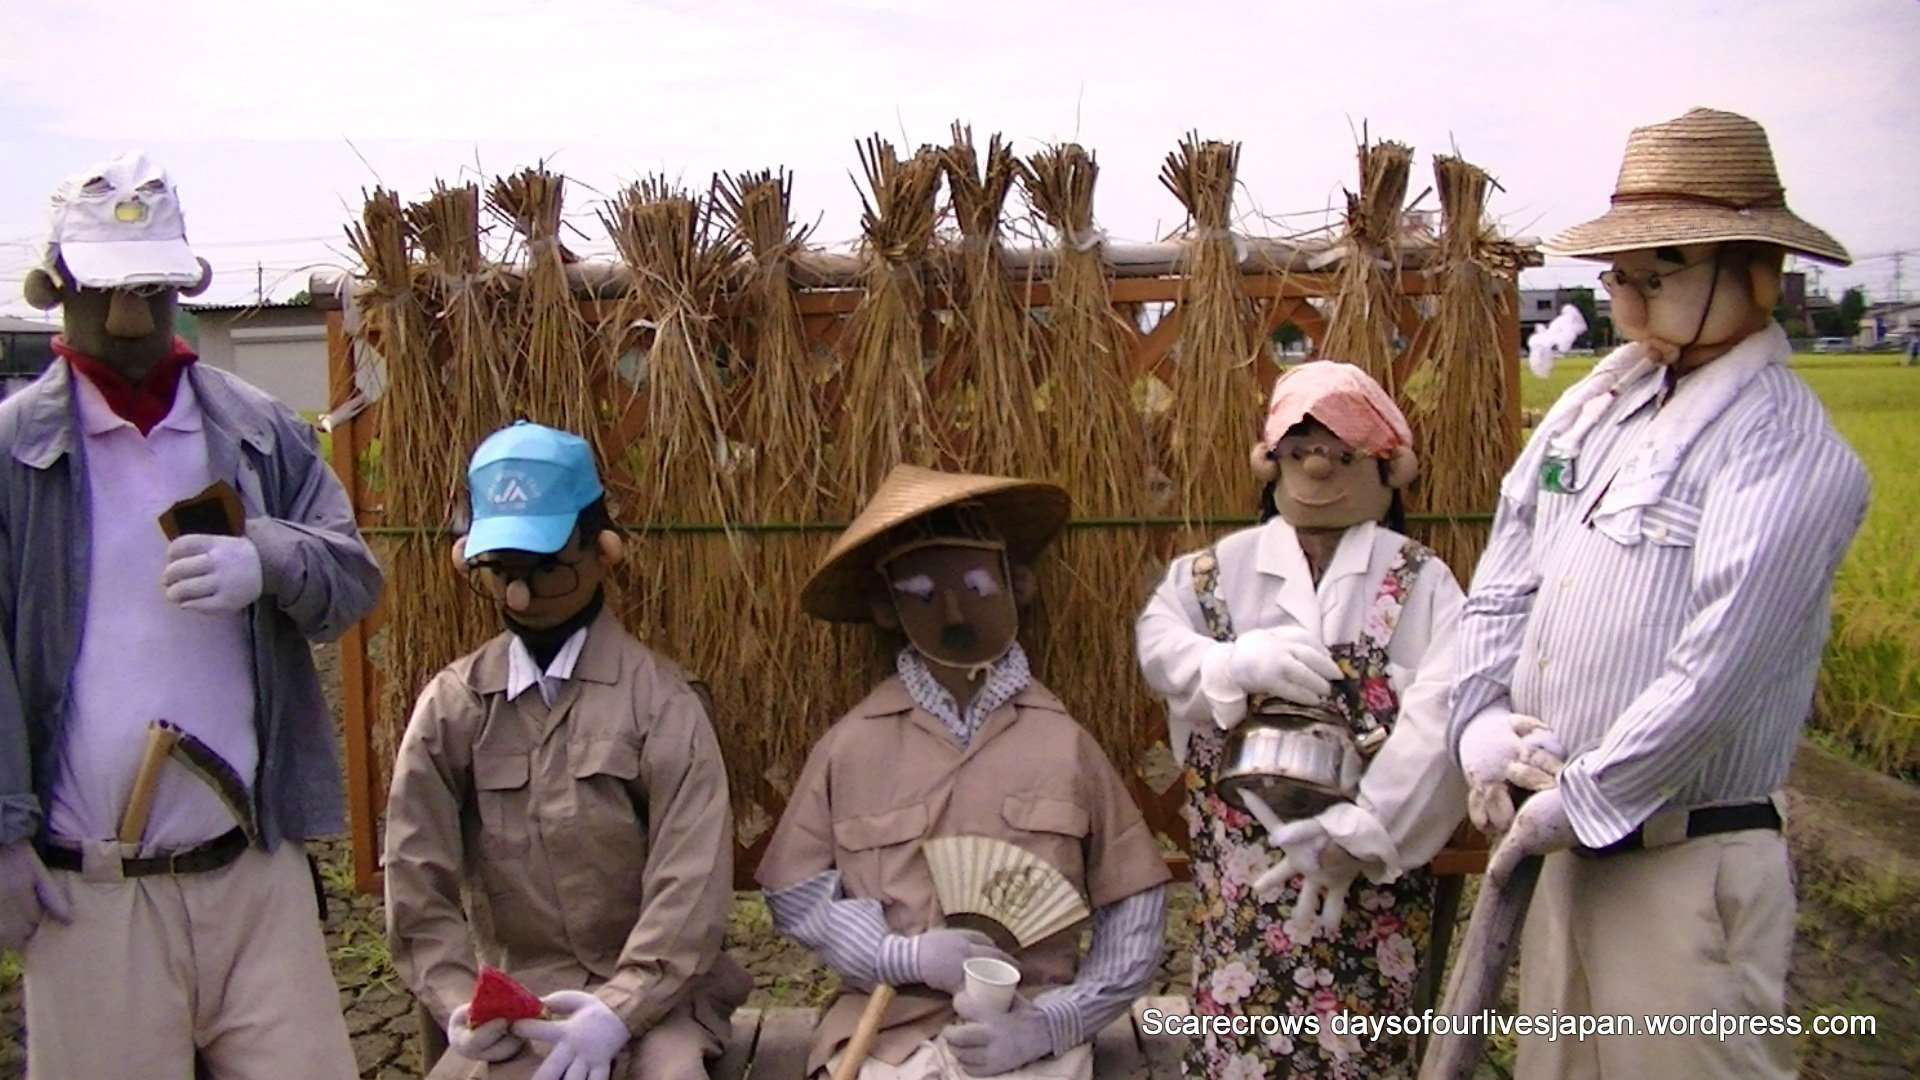 scarecrows in Japan